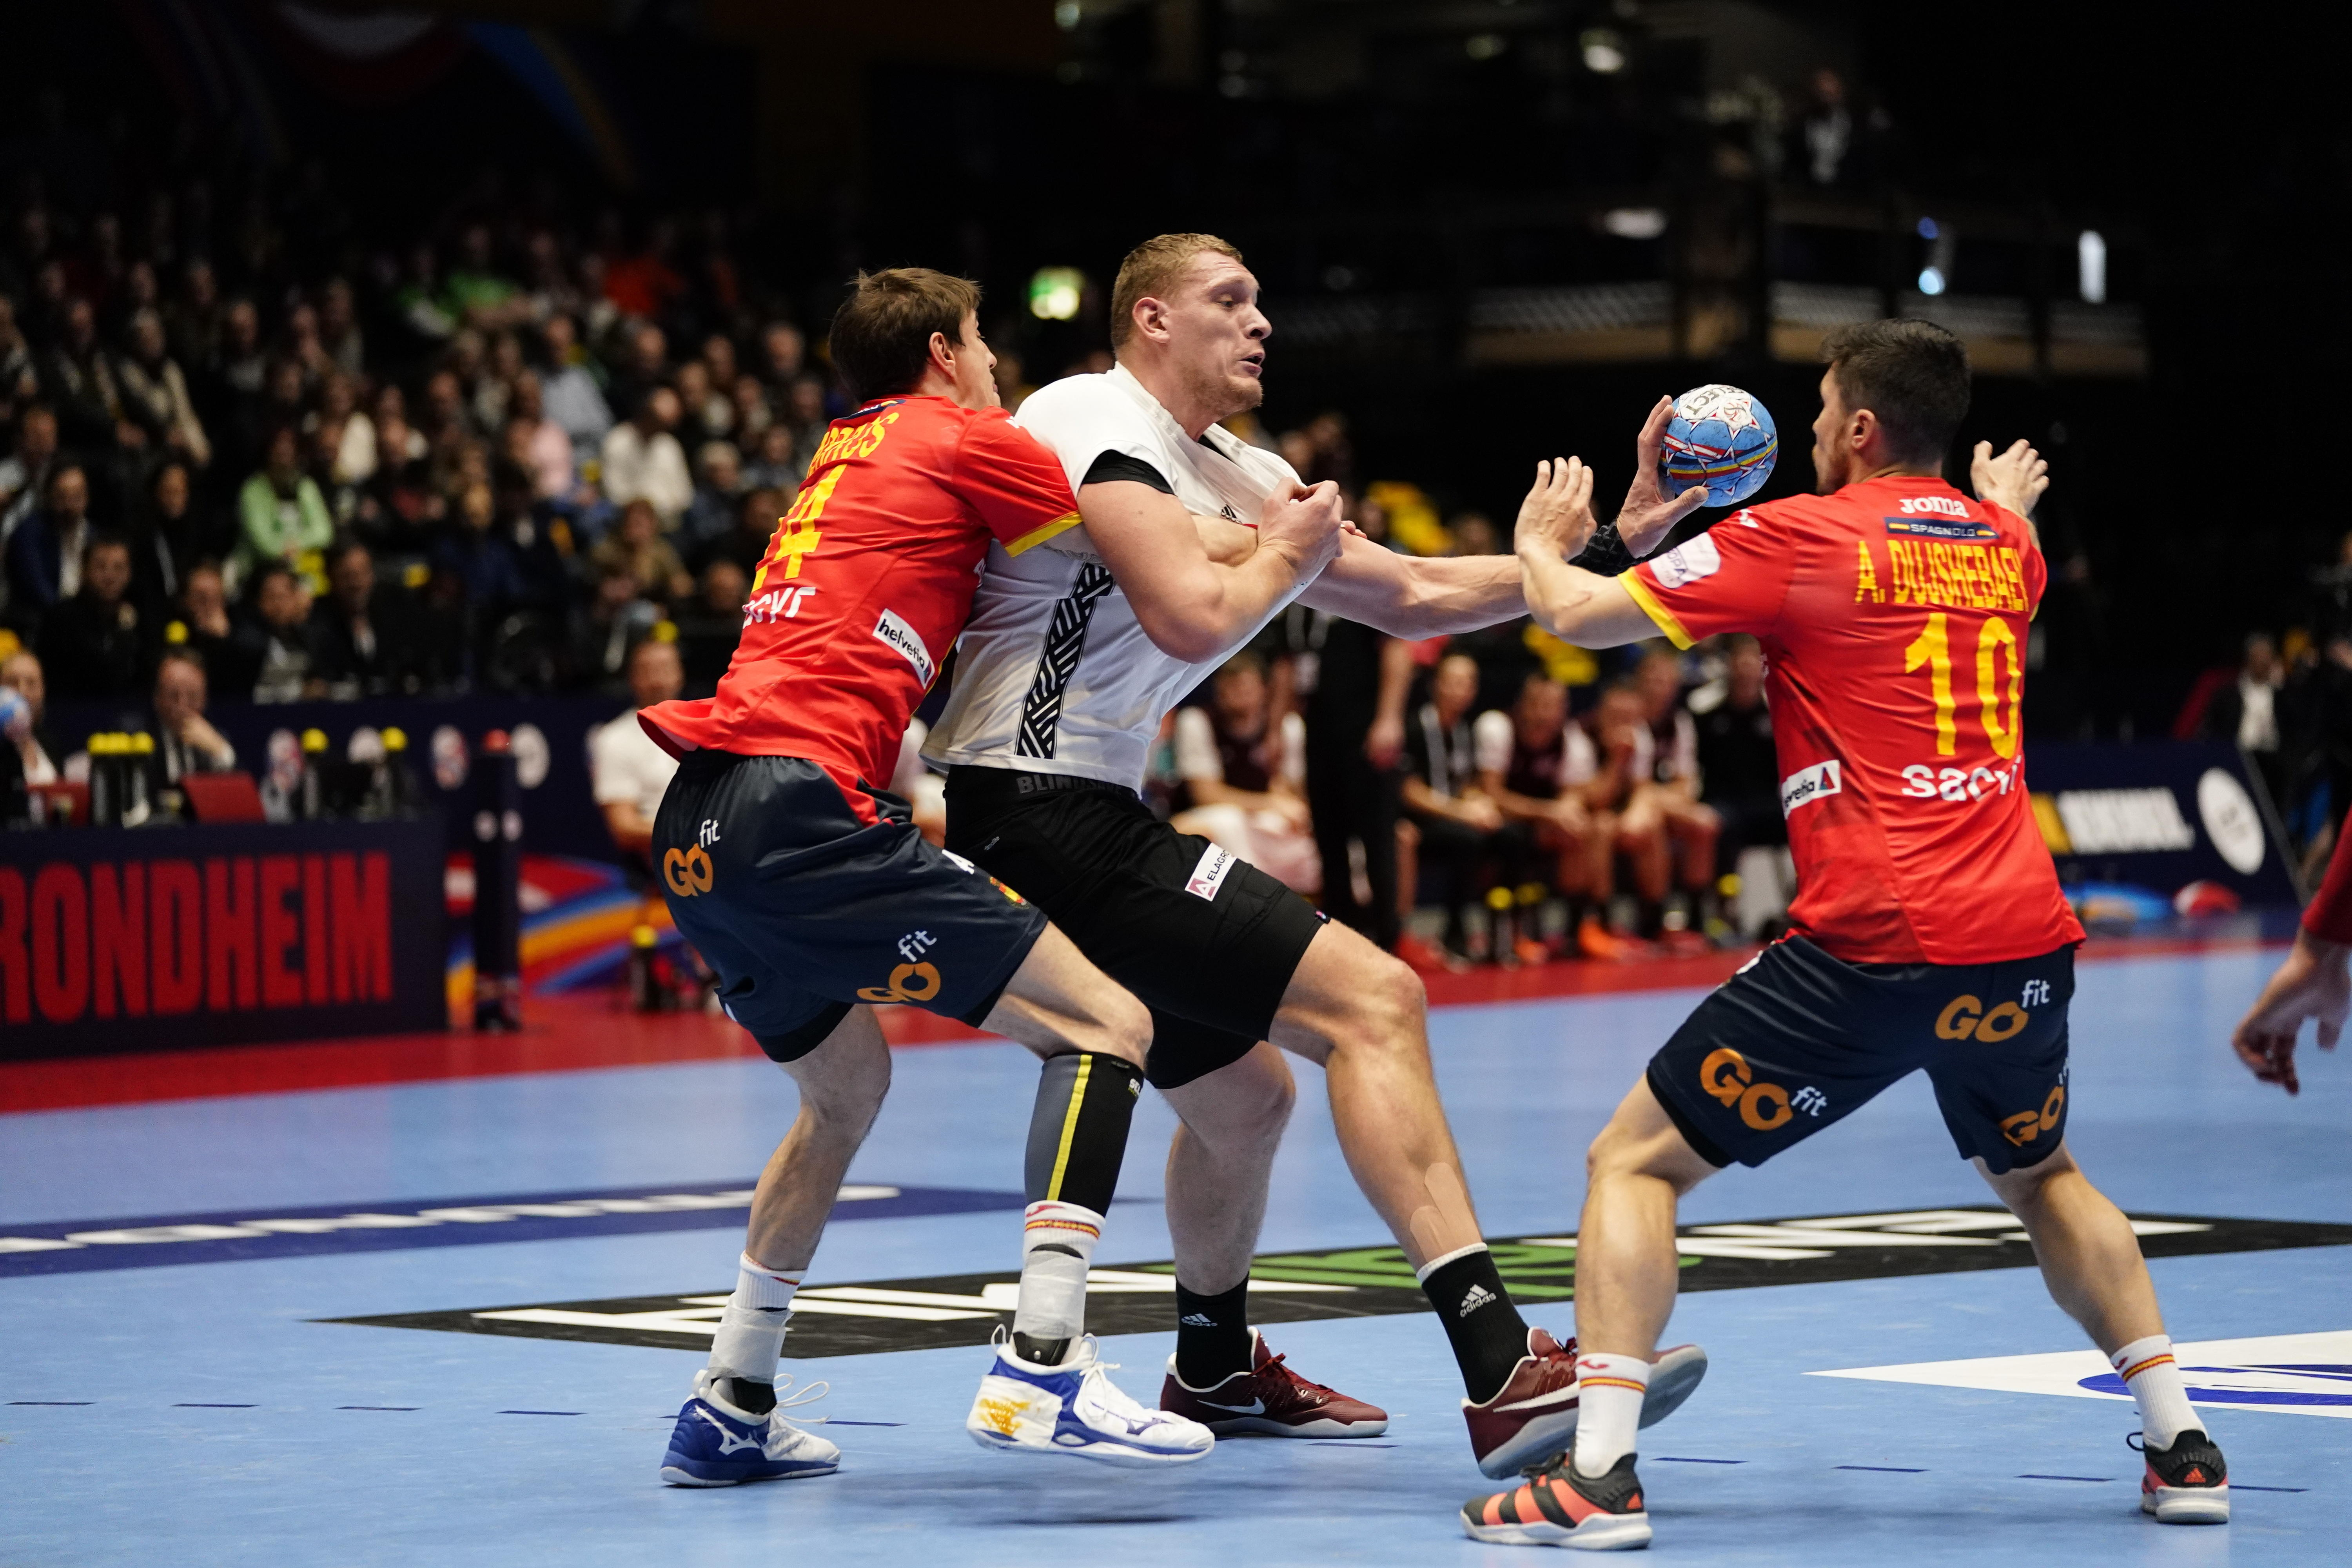 Nor The Expulsions Manage To Stop Spain Against Latvia 33